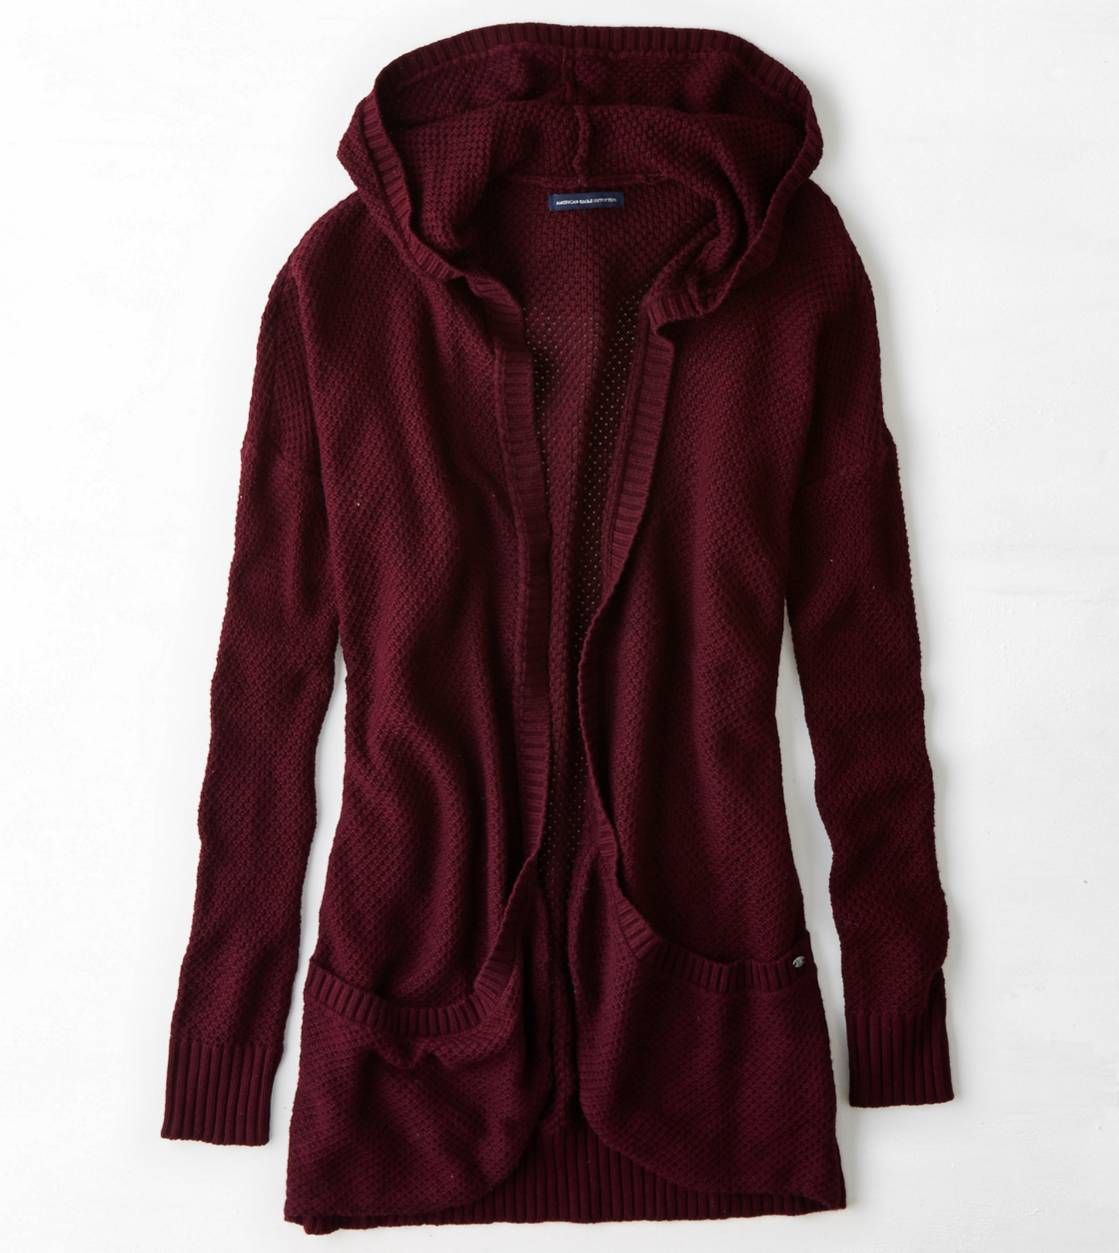 AEO Plush Hooded Cardigan | Hooded cardigan, Aeo and Casual wear